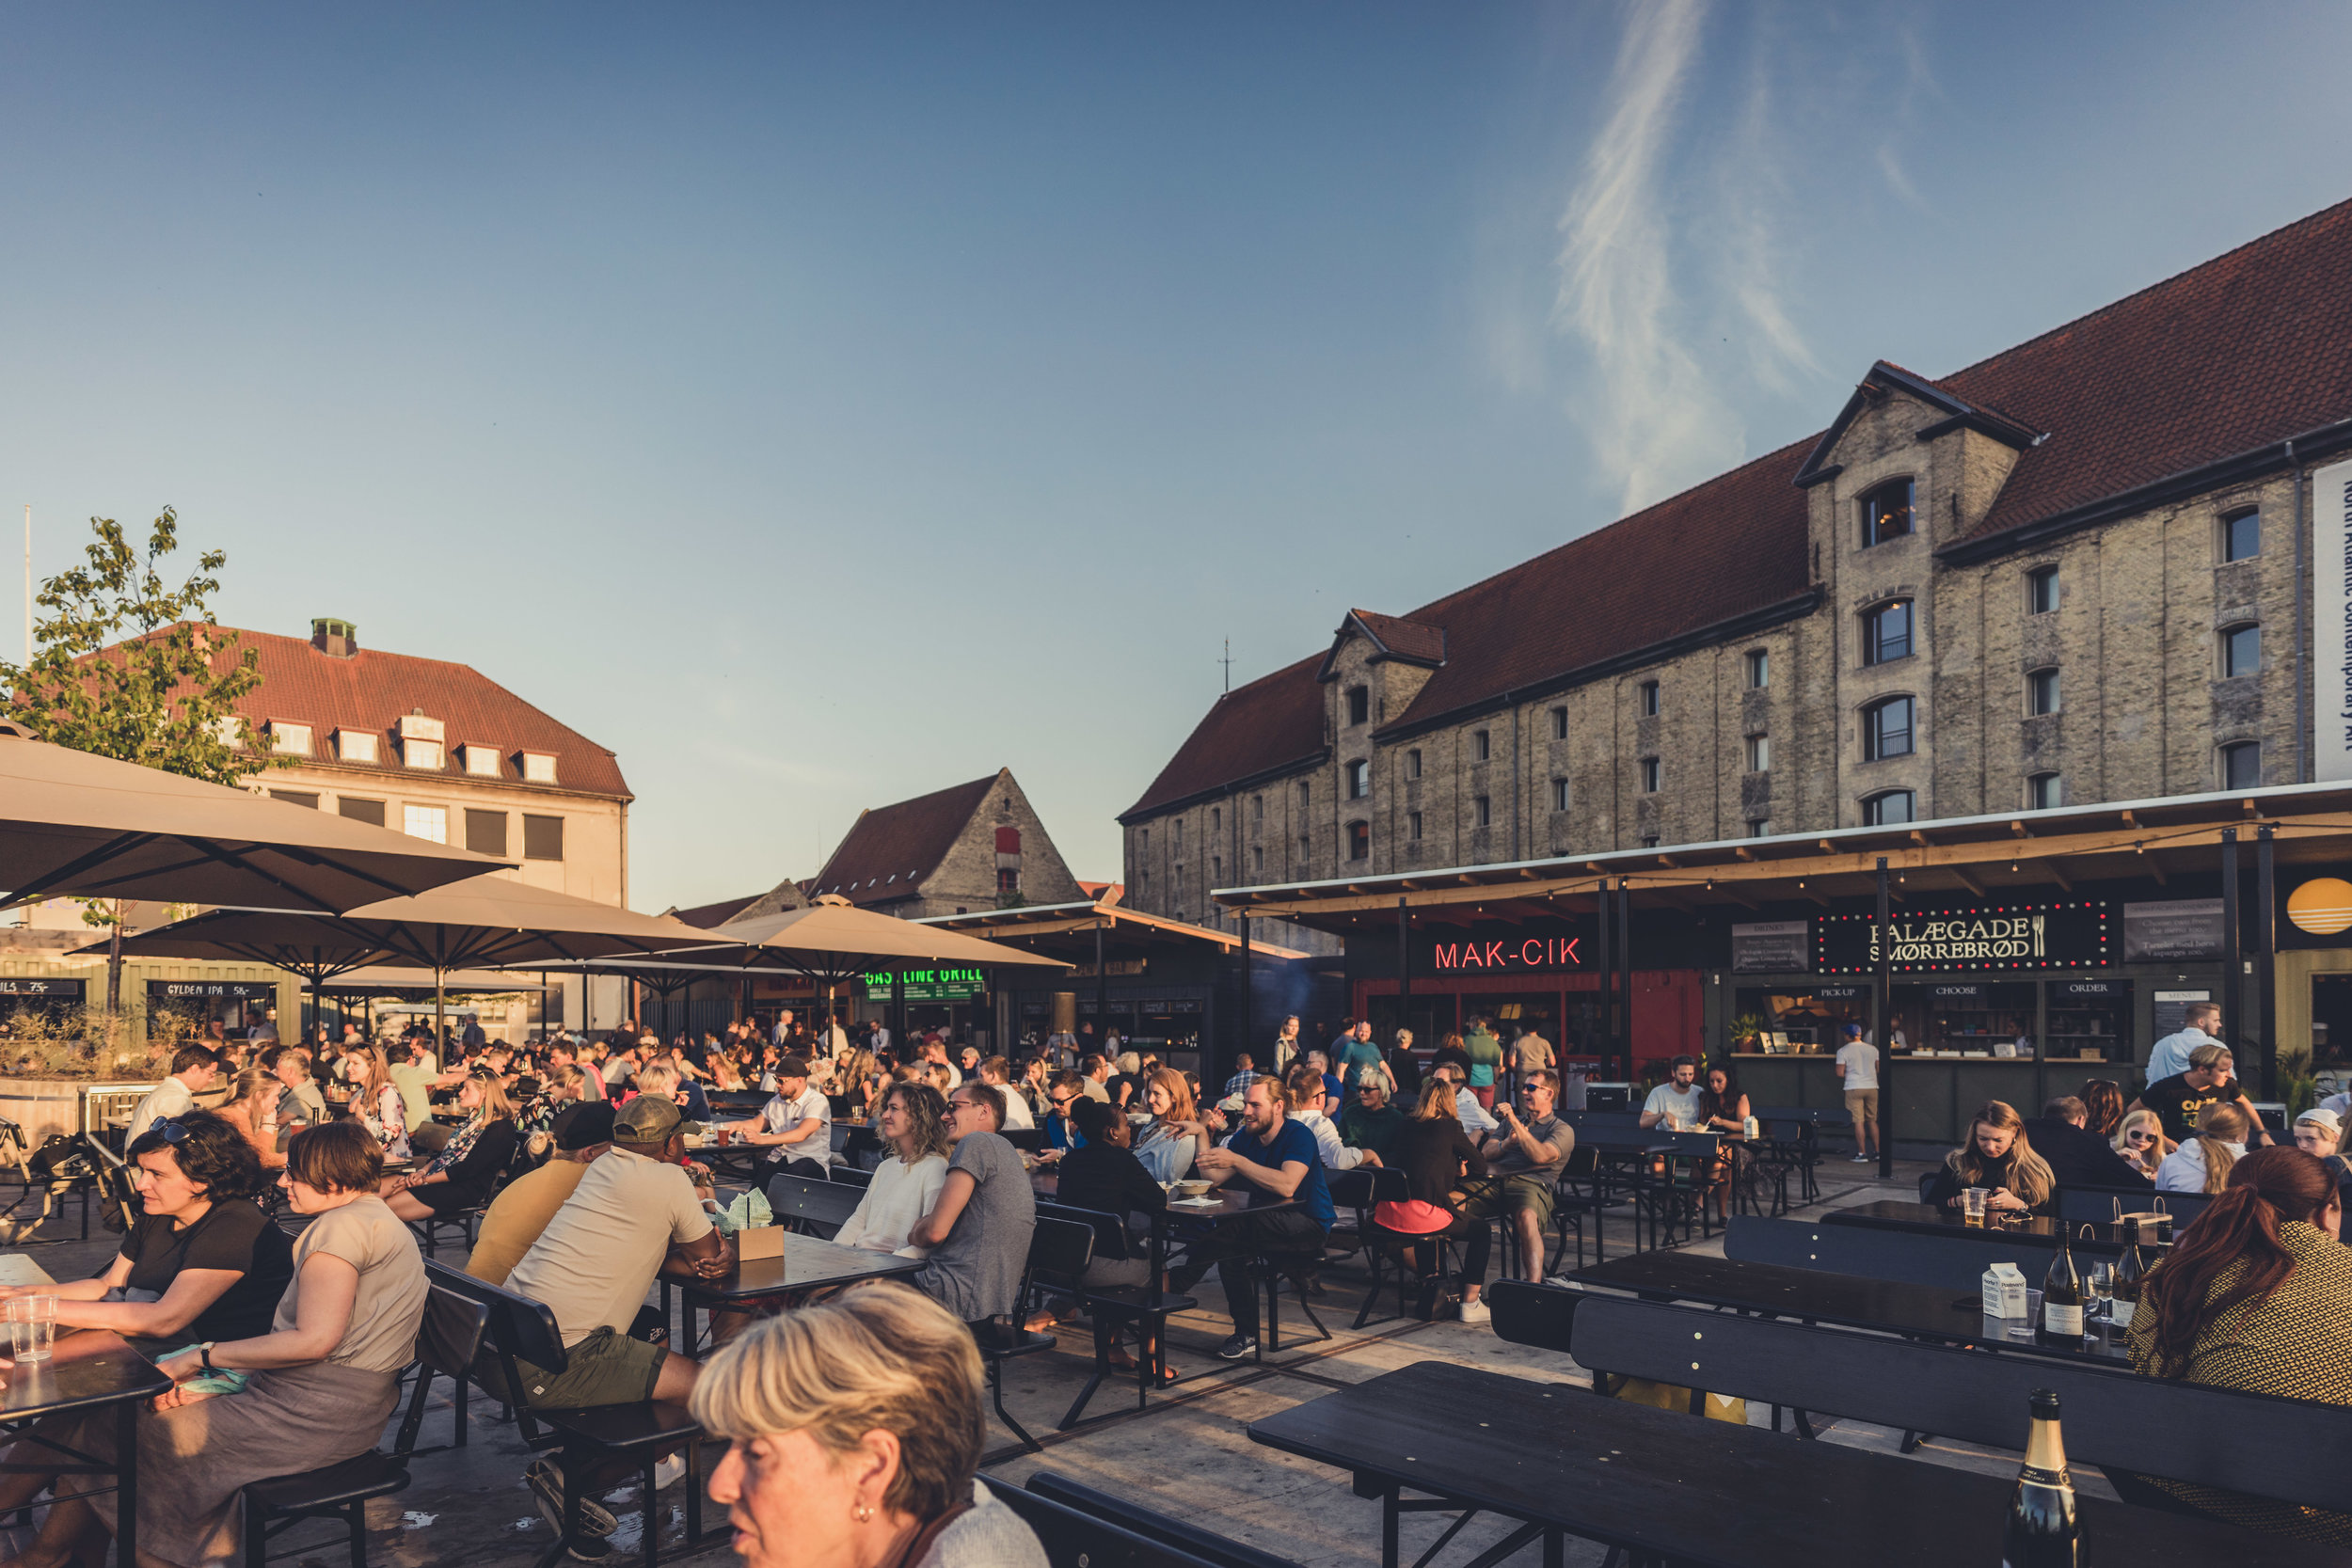 copenhagen. denmark. travel. adventure. europe. scandinavia. history. travelblog. classic view of the city. nyhavn food court.jpg